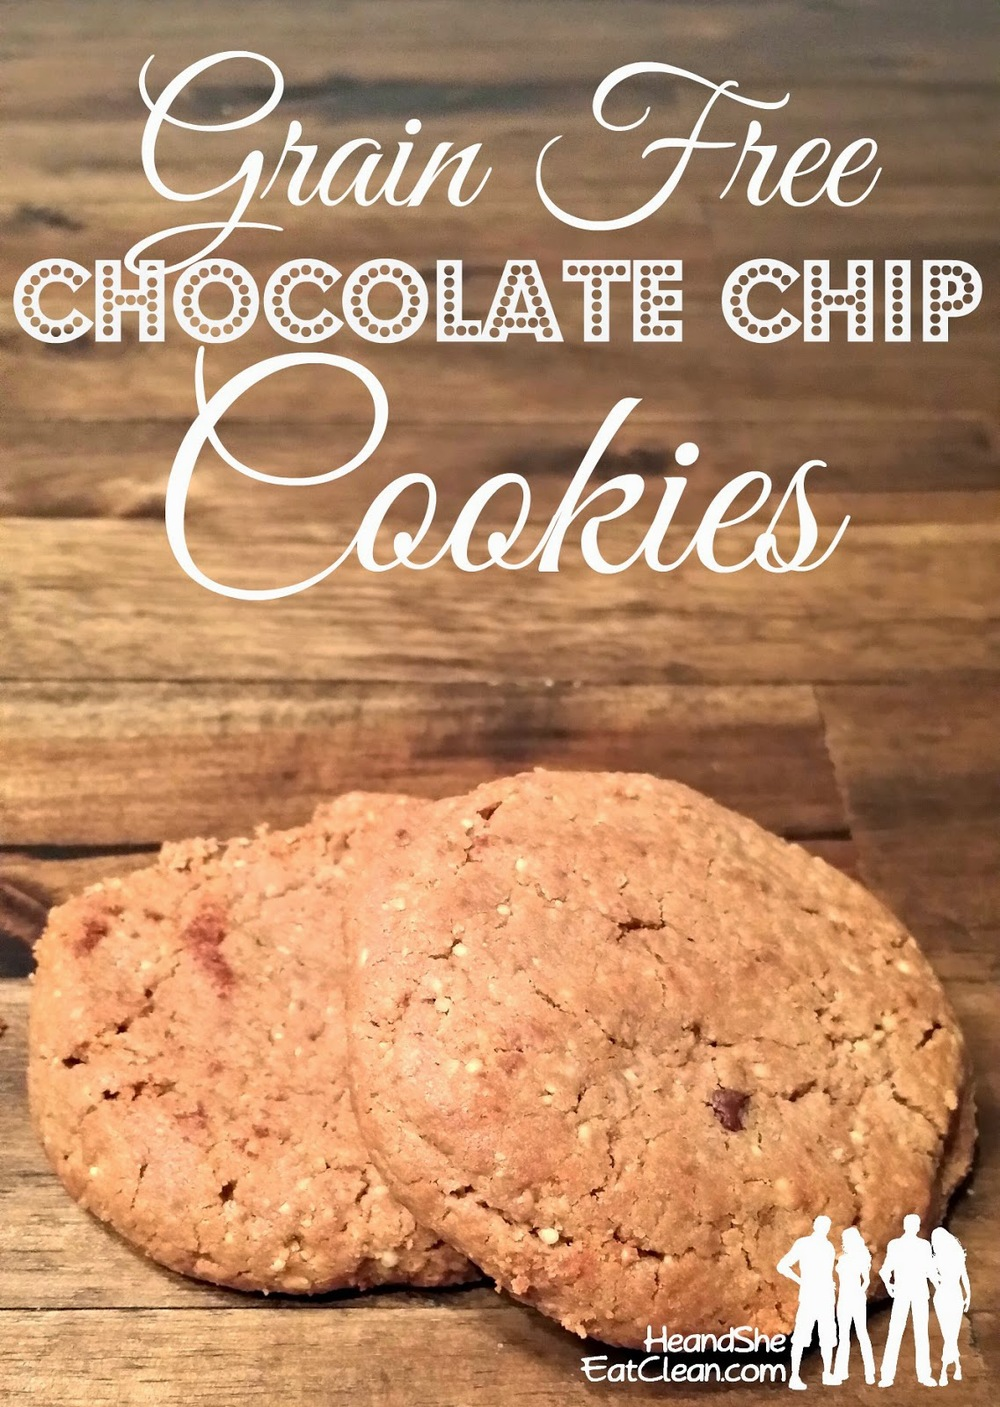 Grain-Gluten-Free-Chocolate-Chip-Cookies-Dessert-Recipe-He-She-Eat-Clean-2.jpg